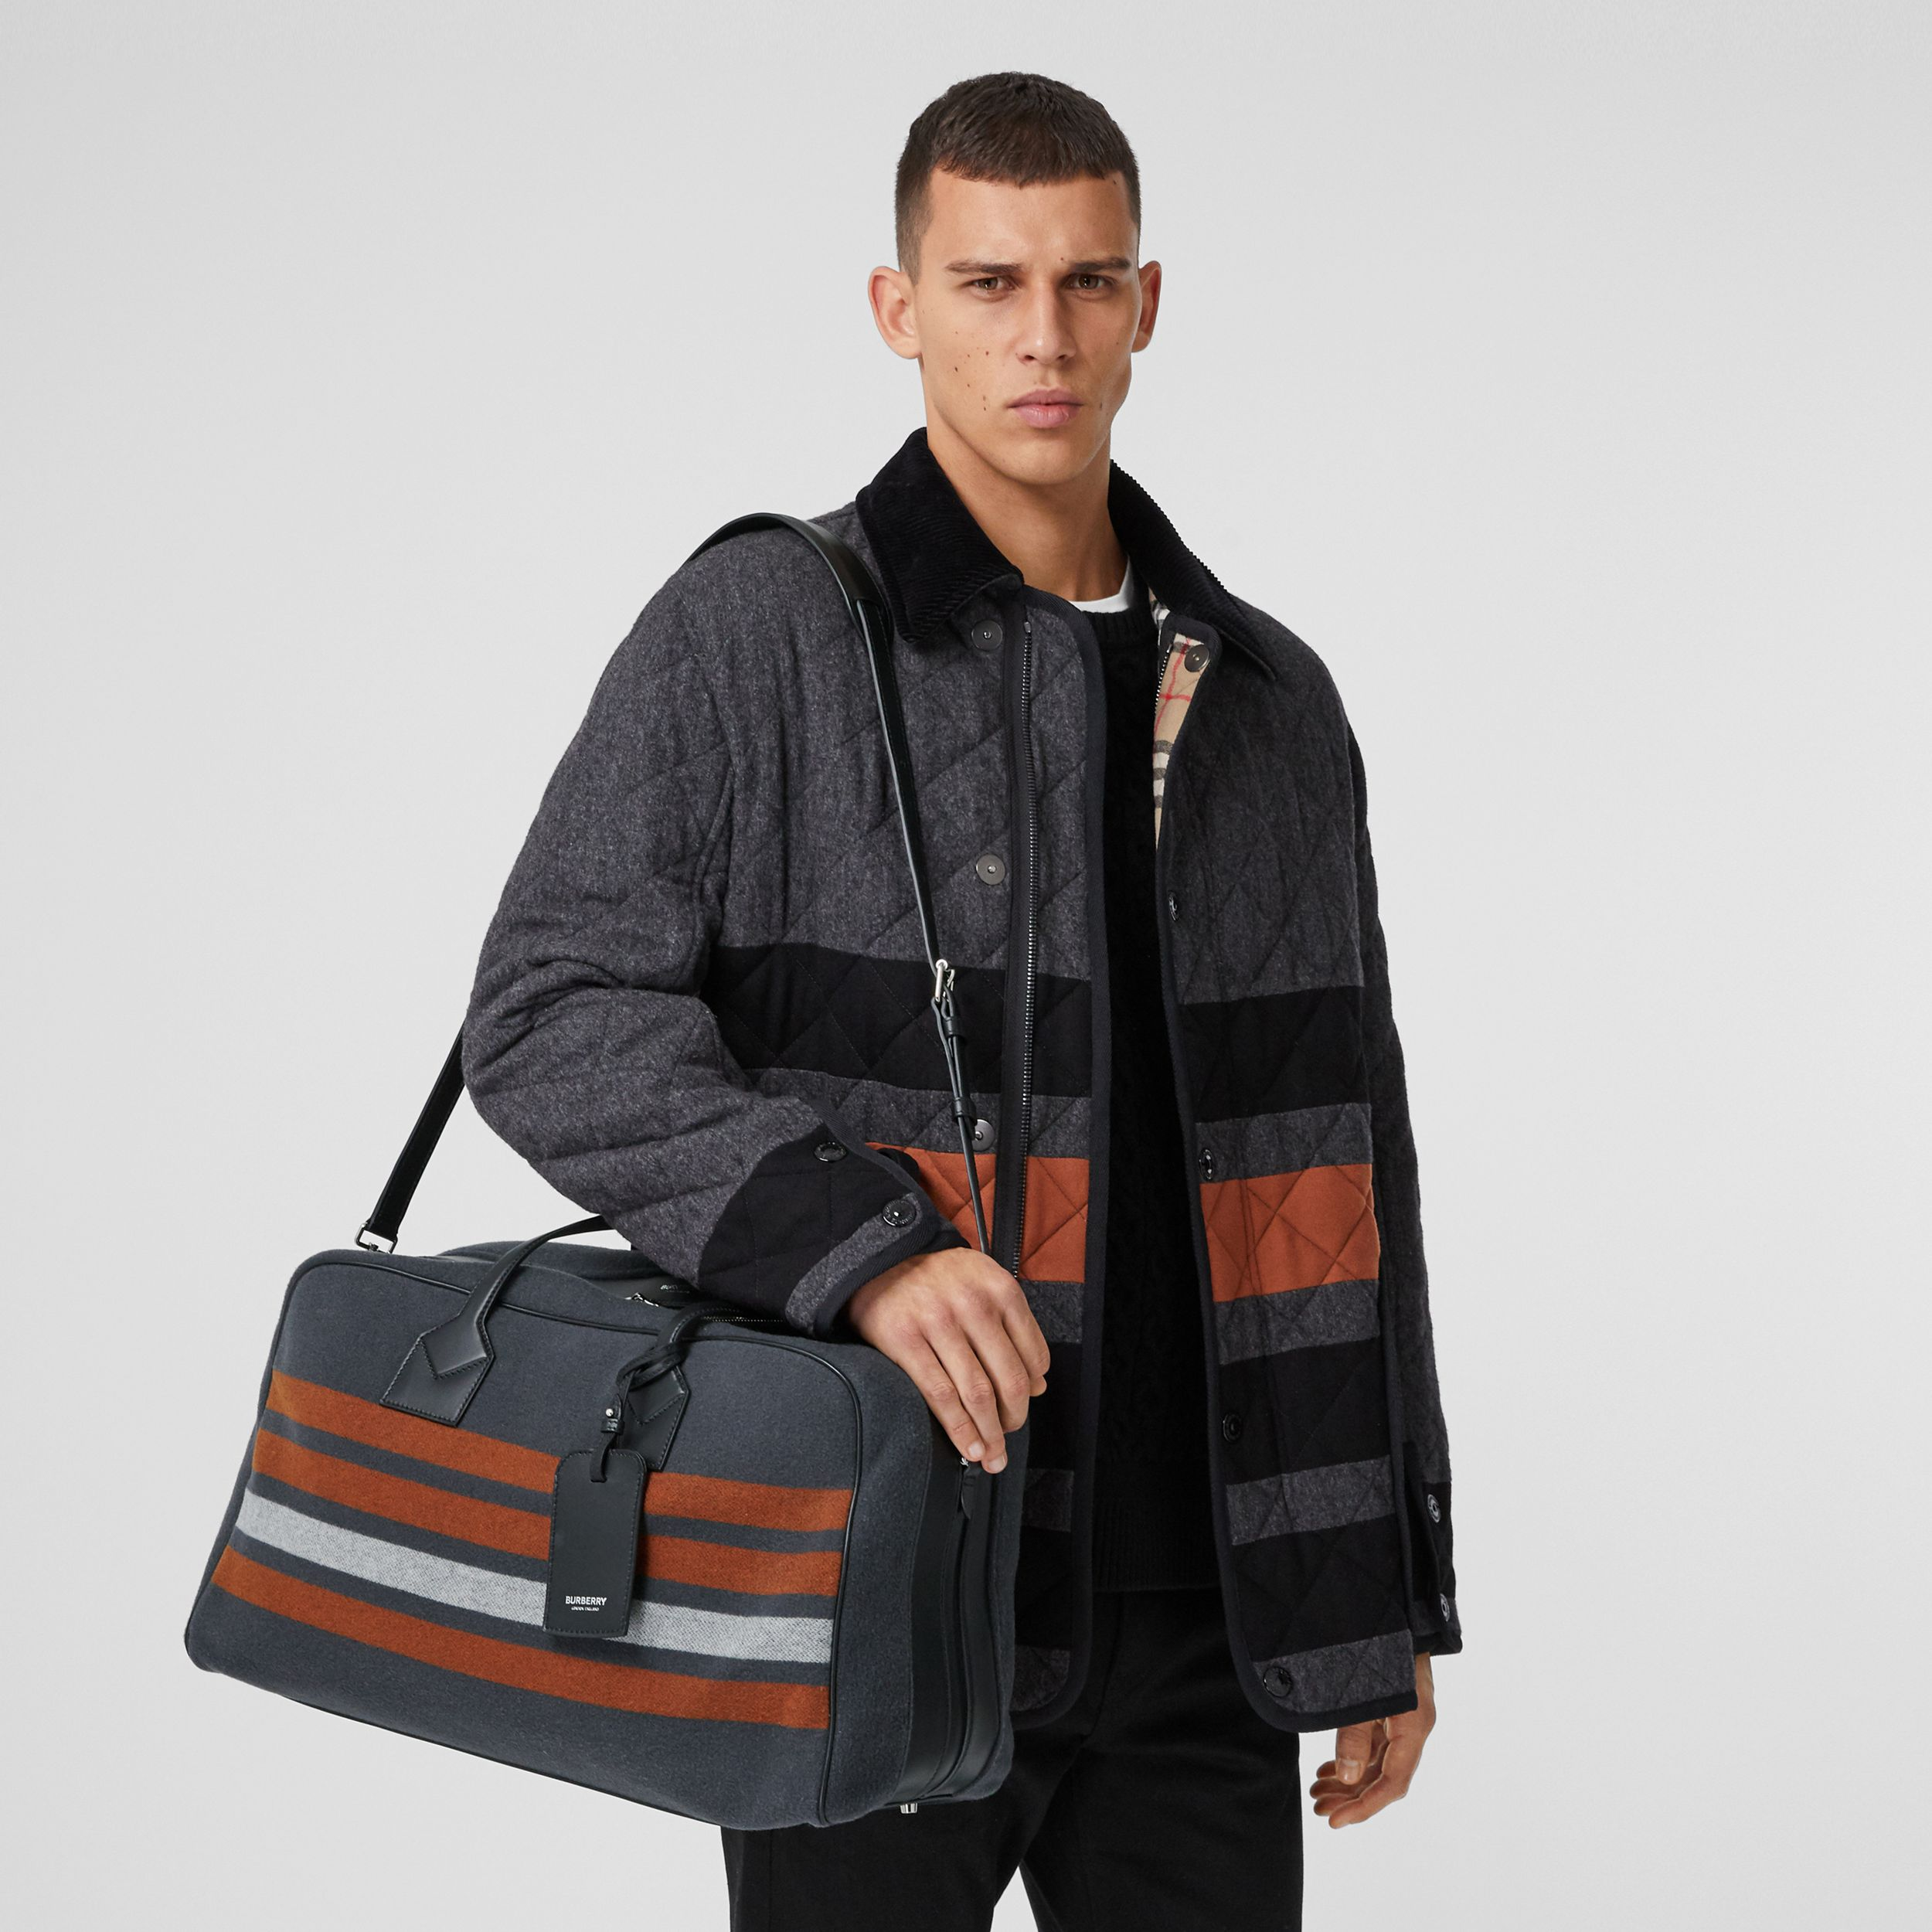 Striped Wool and Leather Cube Holdall in Mid Grey - Men | Burberry United States - 3